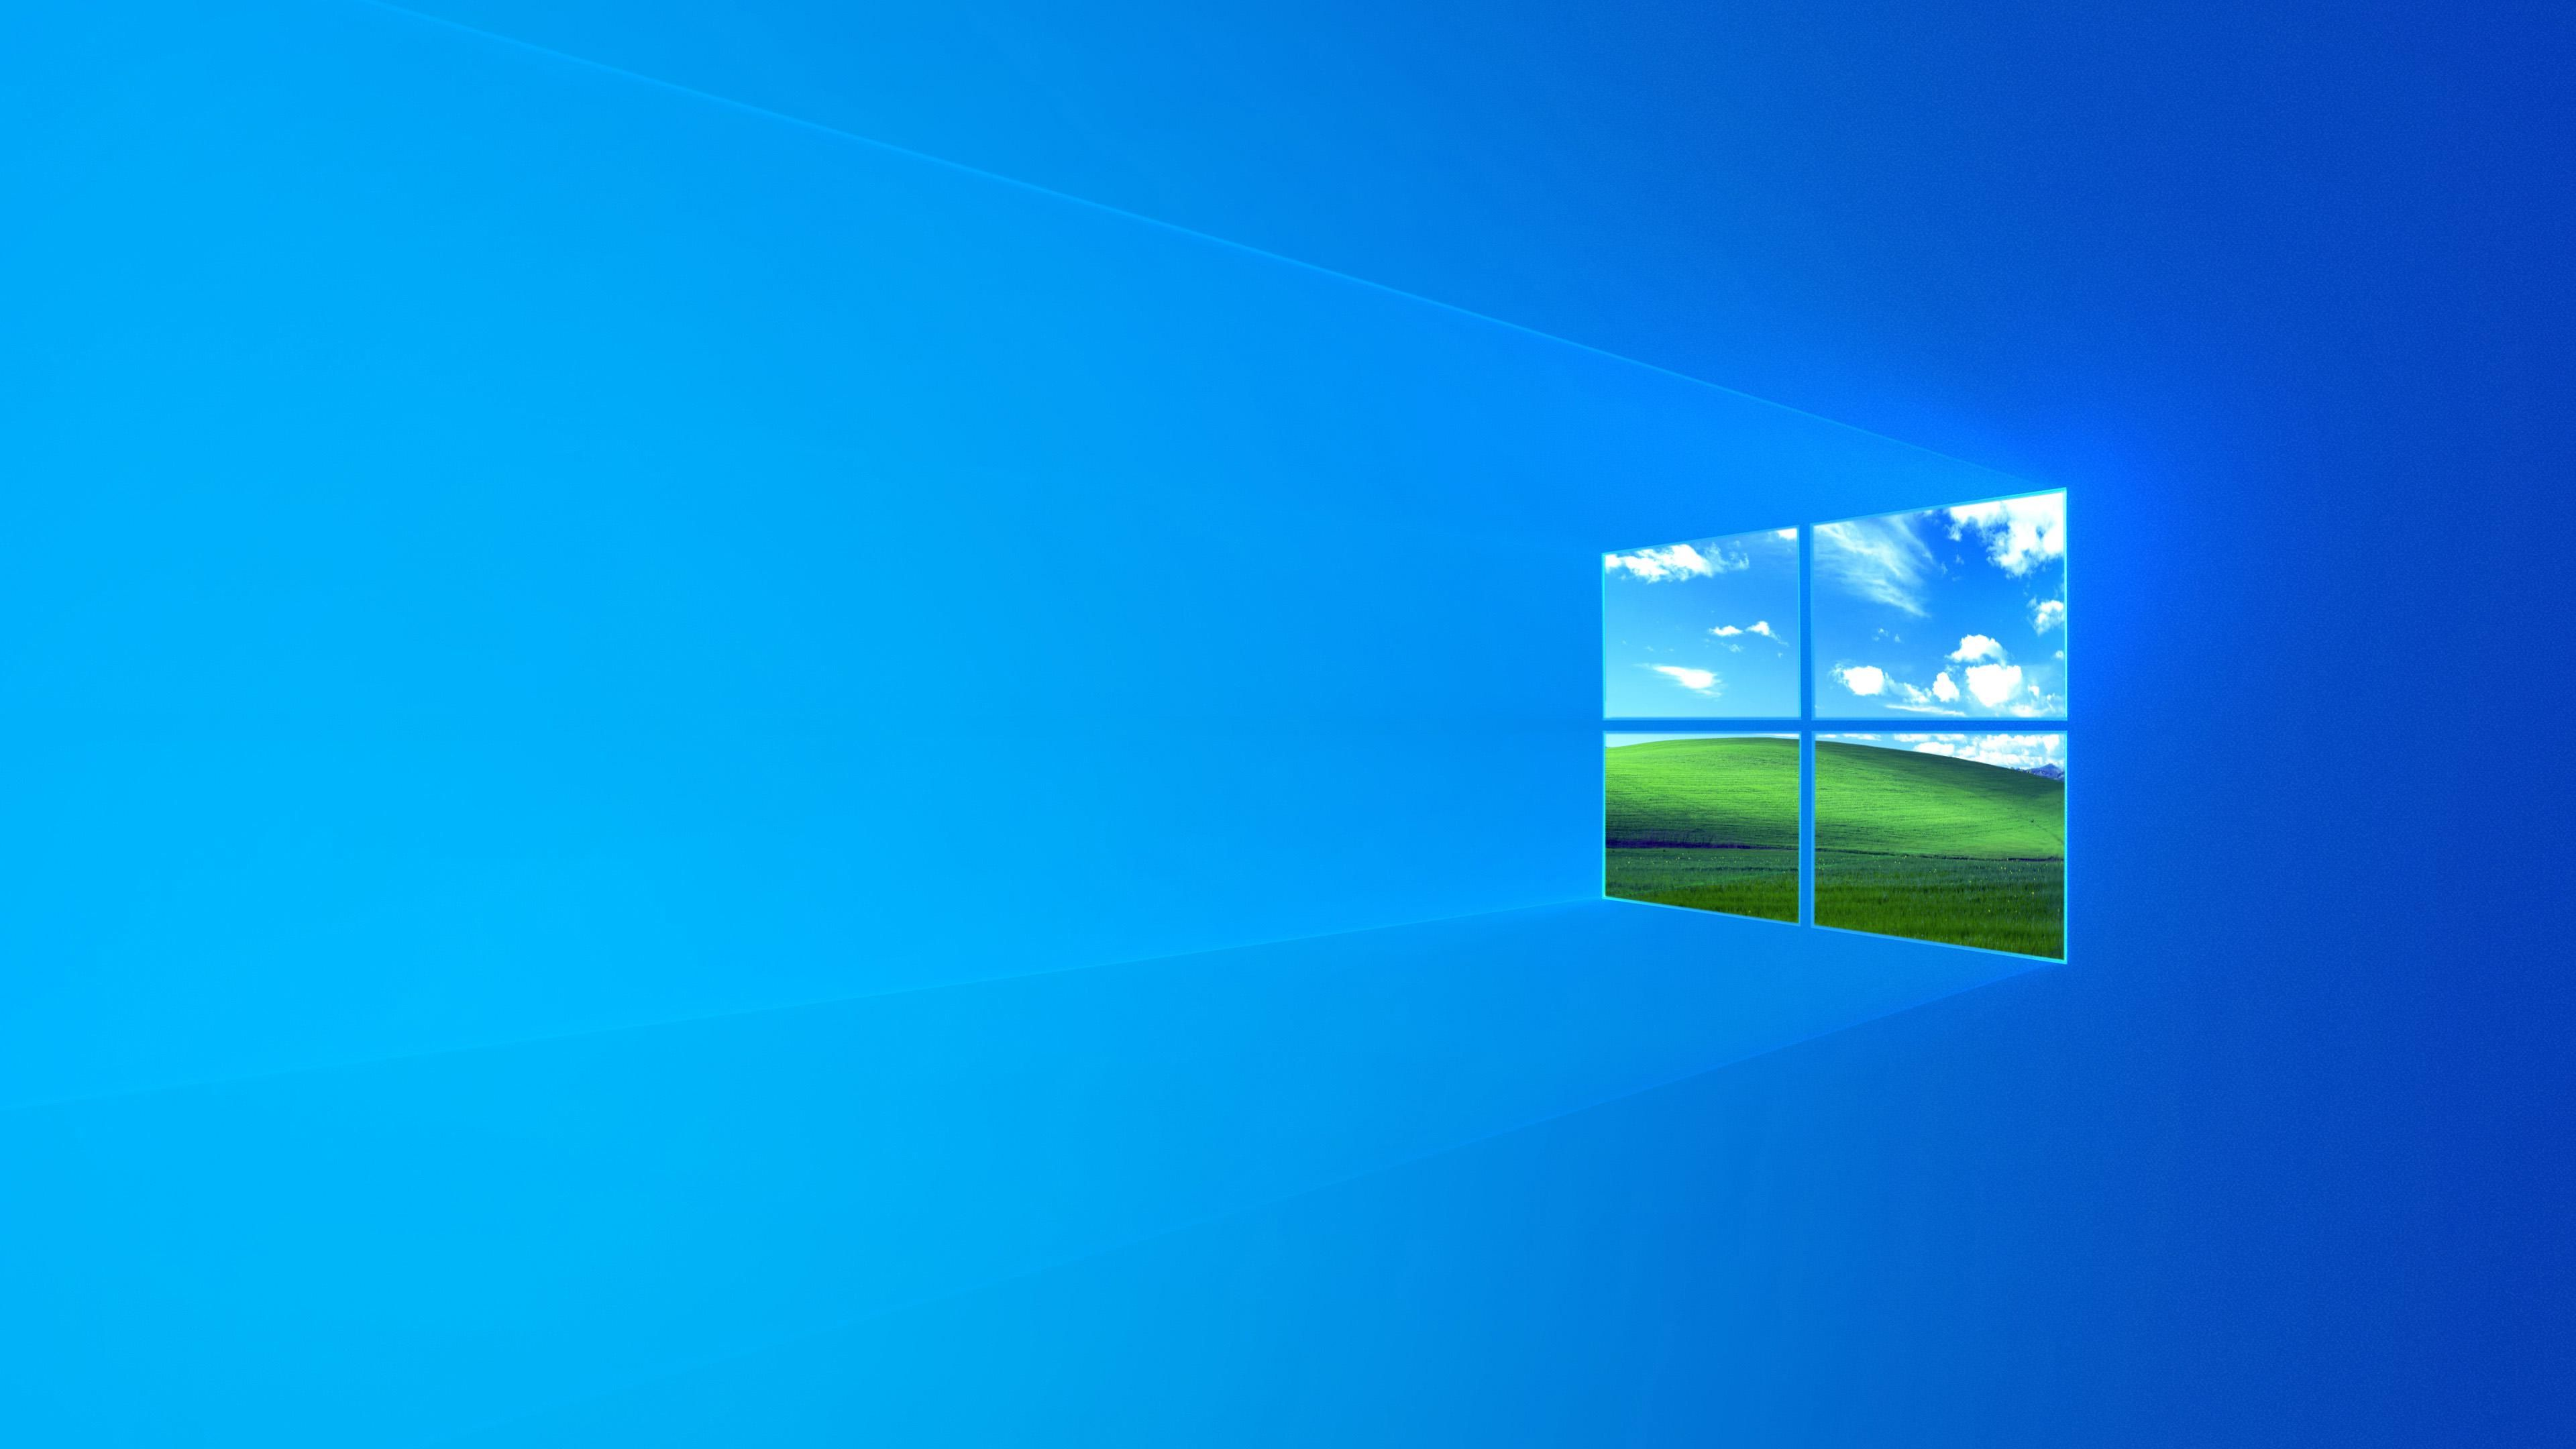 Windows 10 1903 Default Wallpaper With A Flavor Of Xp 3840x2160 Wallpaper Windows 10 Windows Wallpaper Beautiful Wallpaper Images